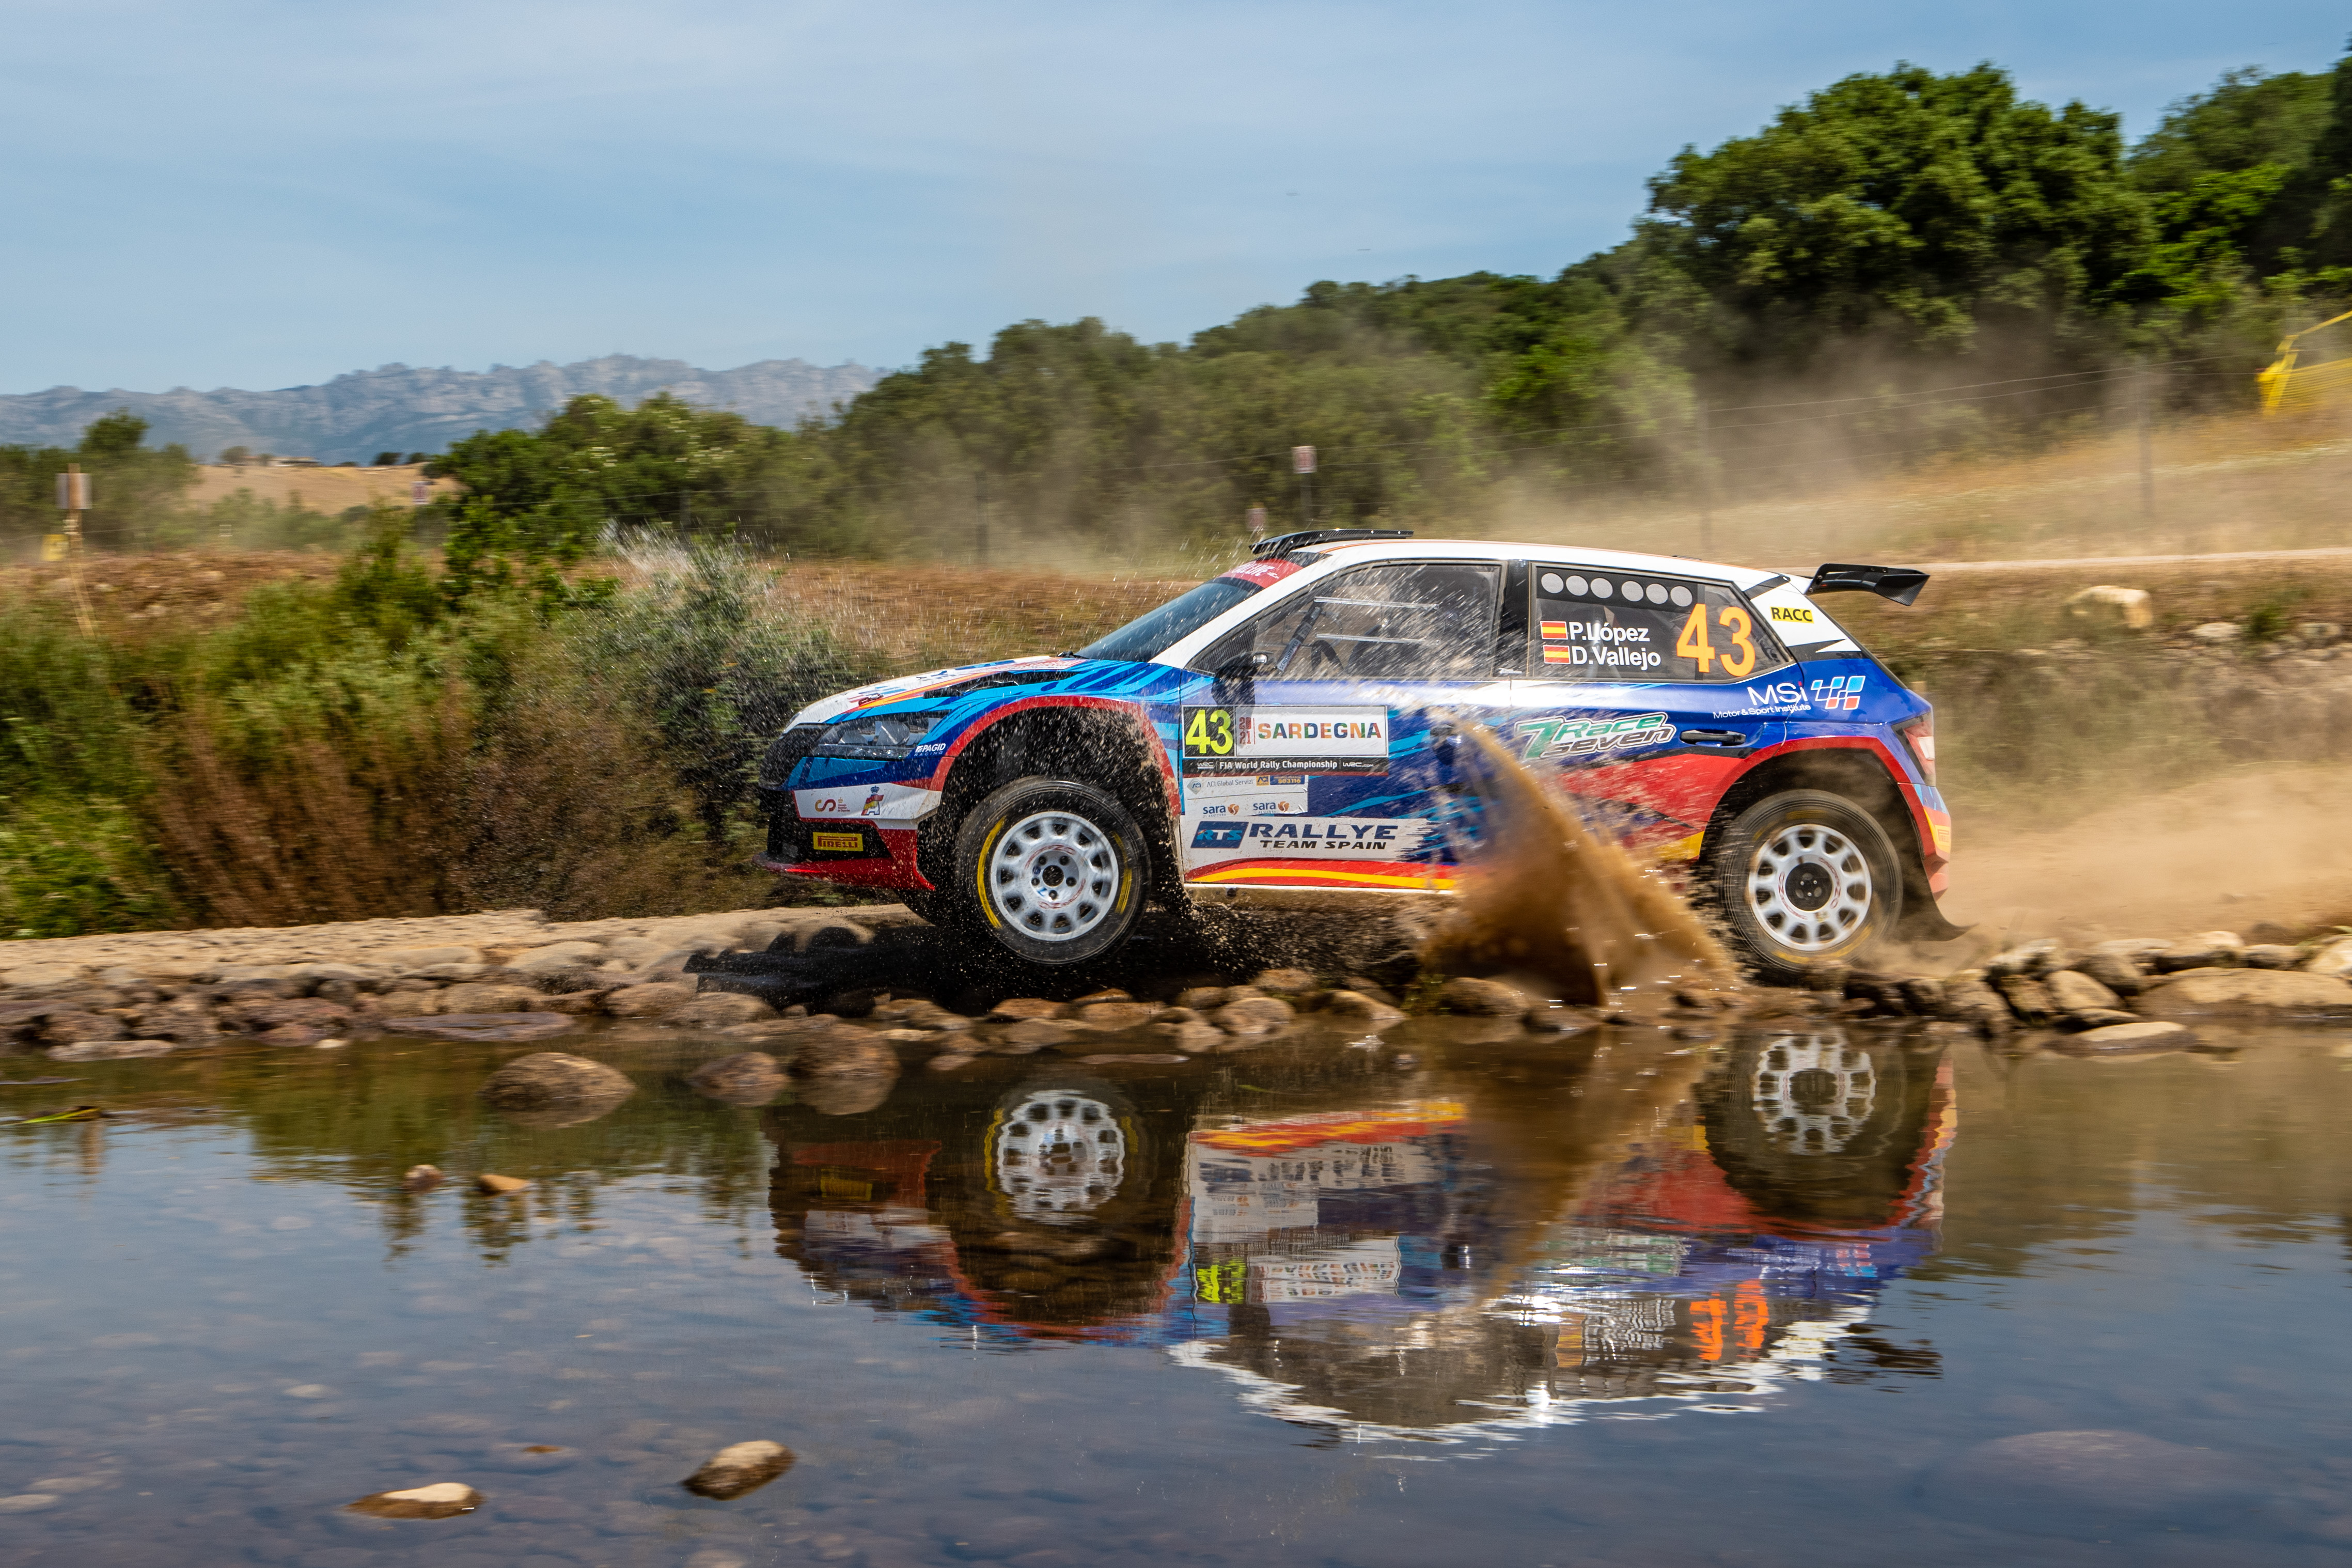 Renties Ypres Rally Belgium: Strong local SKODA privateers aim for WRC3 victory - Image 1